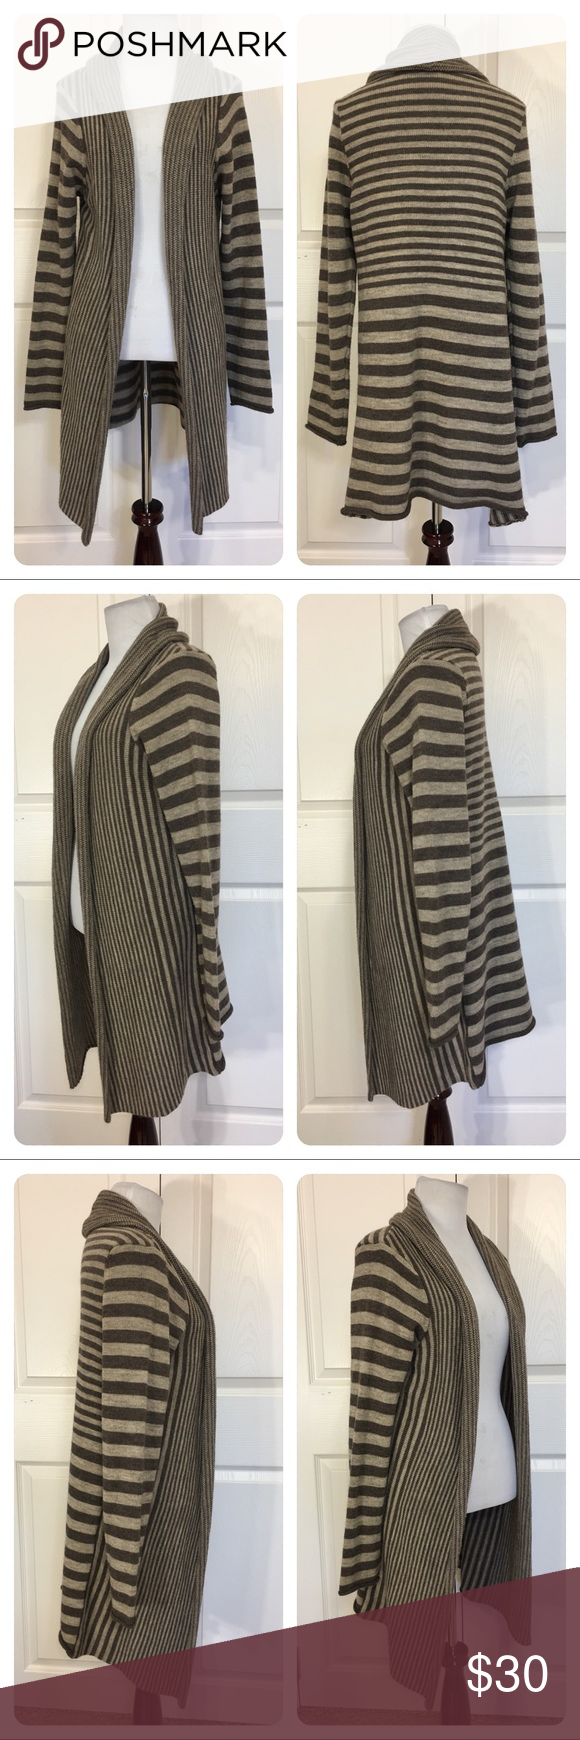 Cocogio striped sweater cardigan | Customer support and Delivery